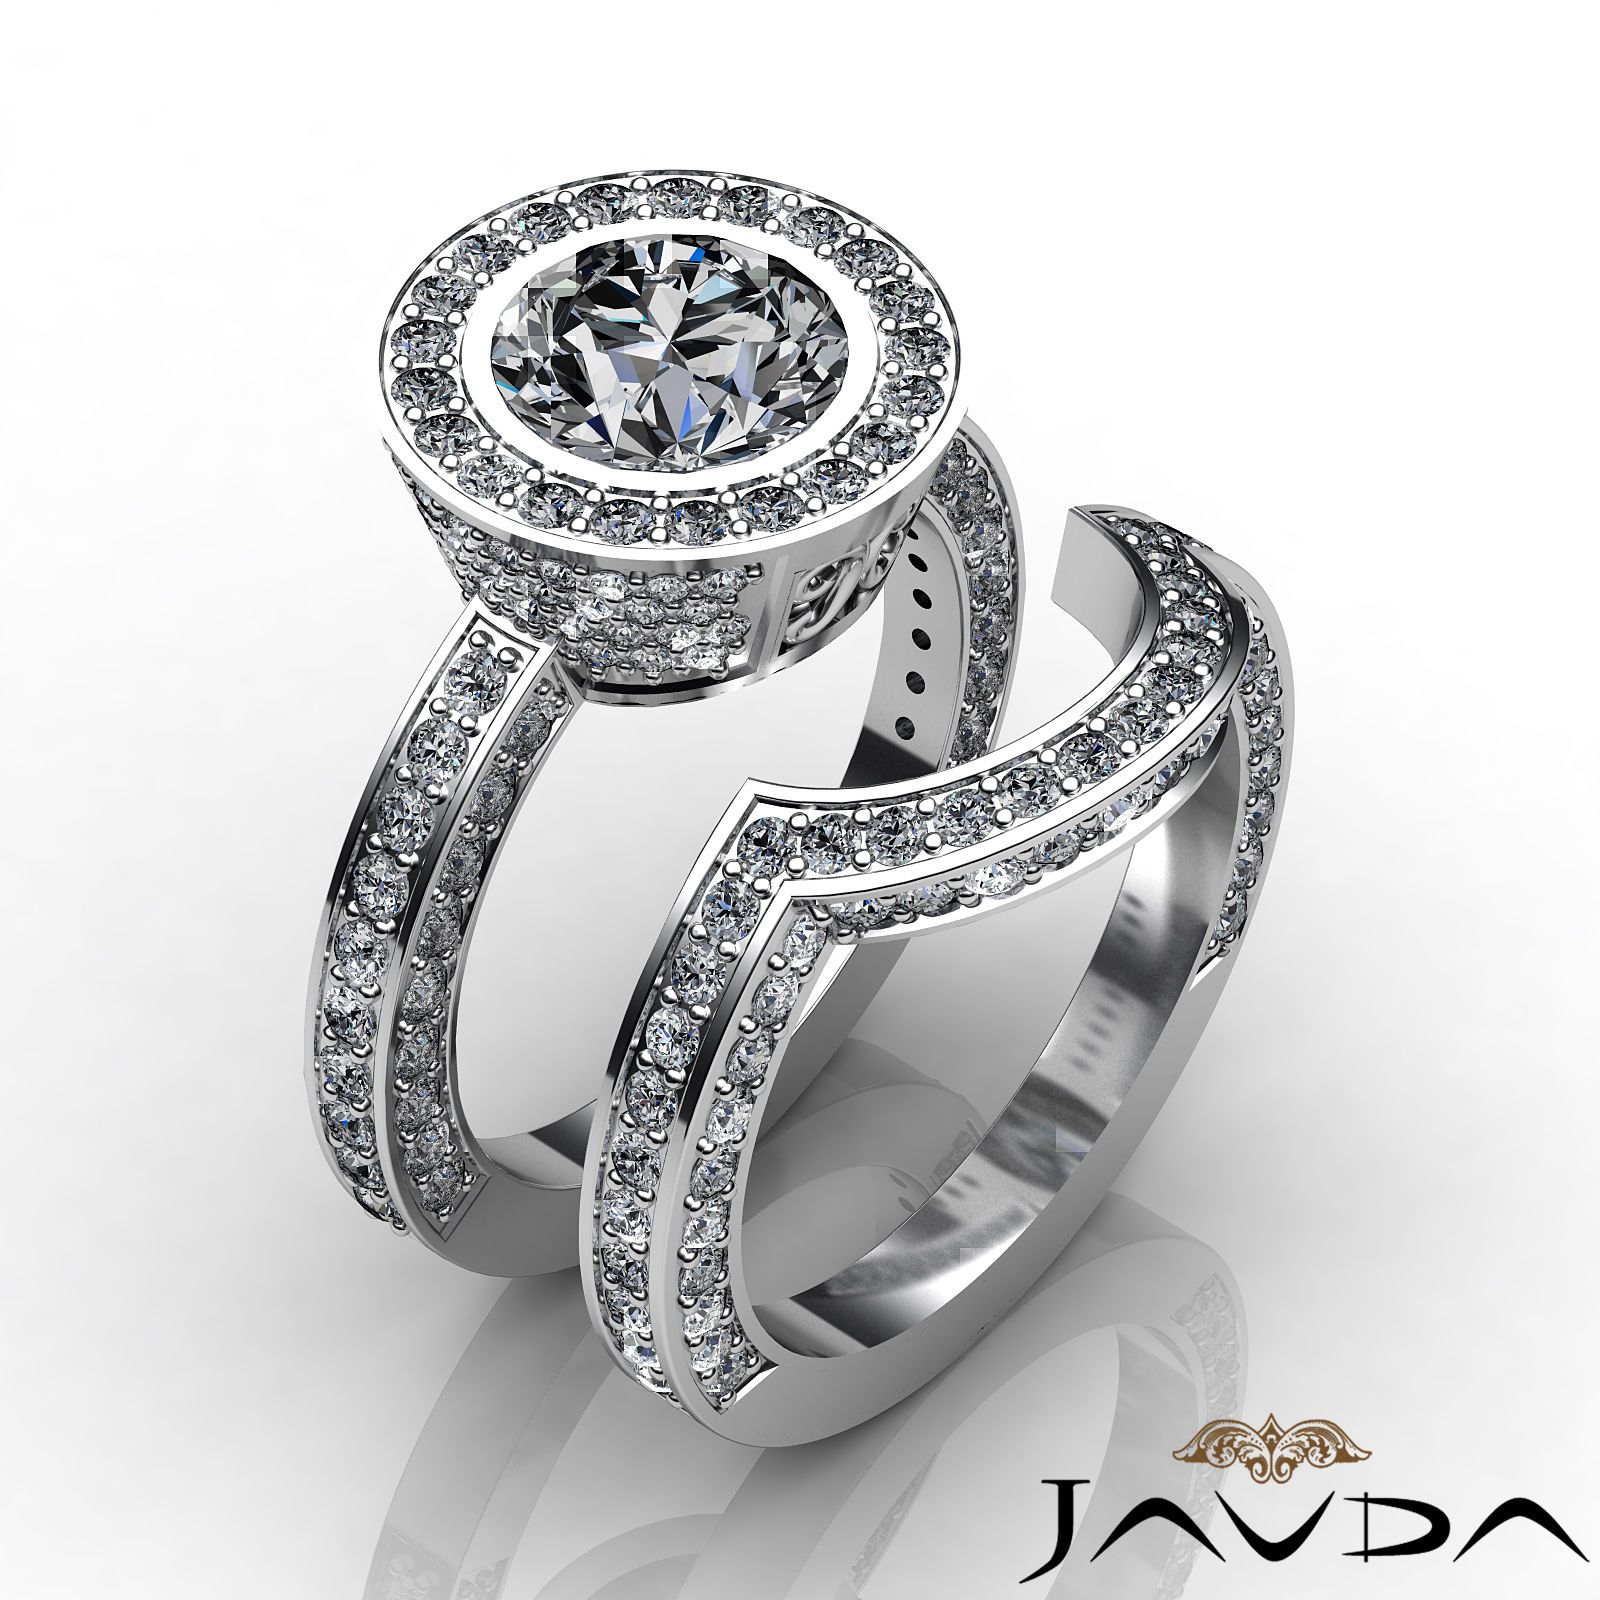 Round bridal set diamond antique pave engagement ring gia g vs